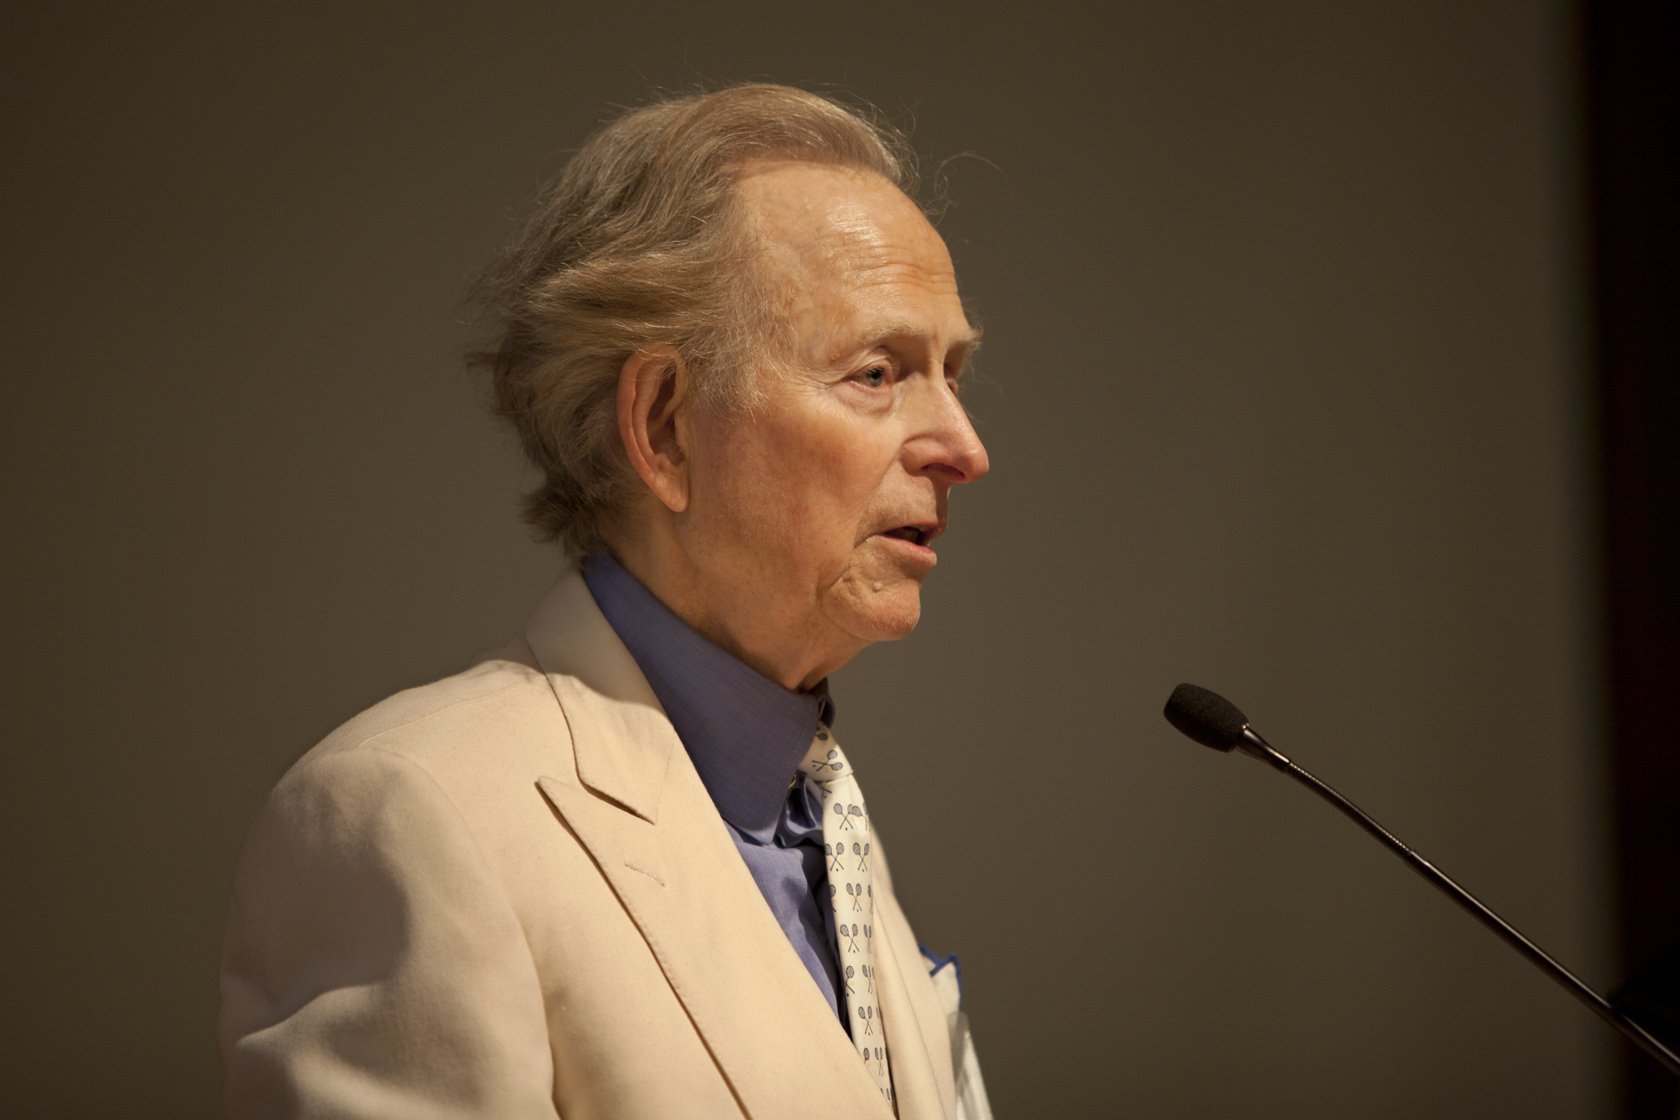 12-tom-wolfe-at-podium